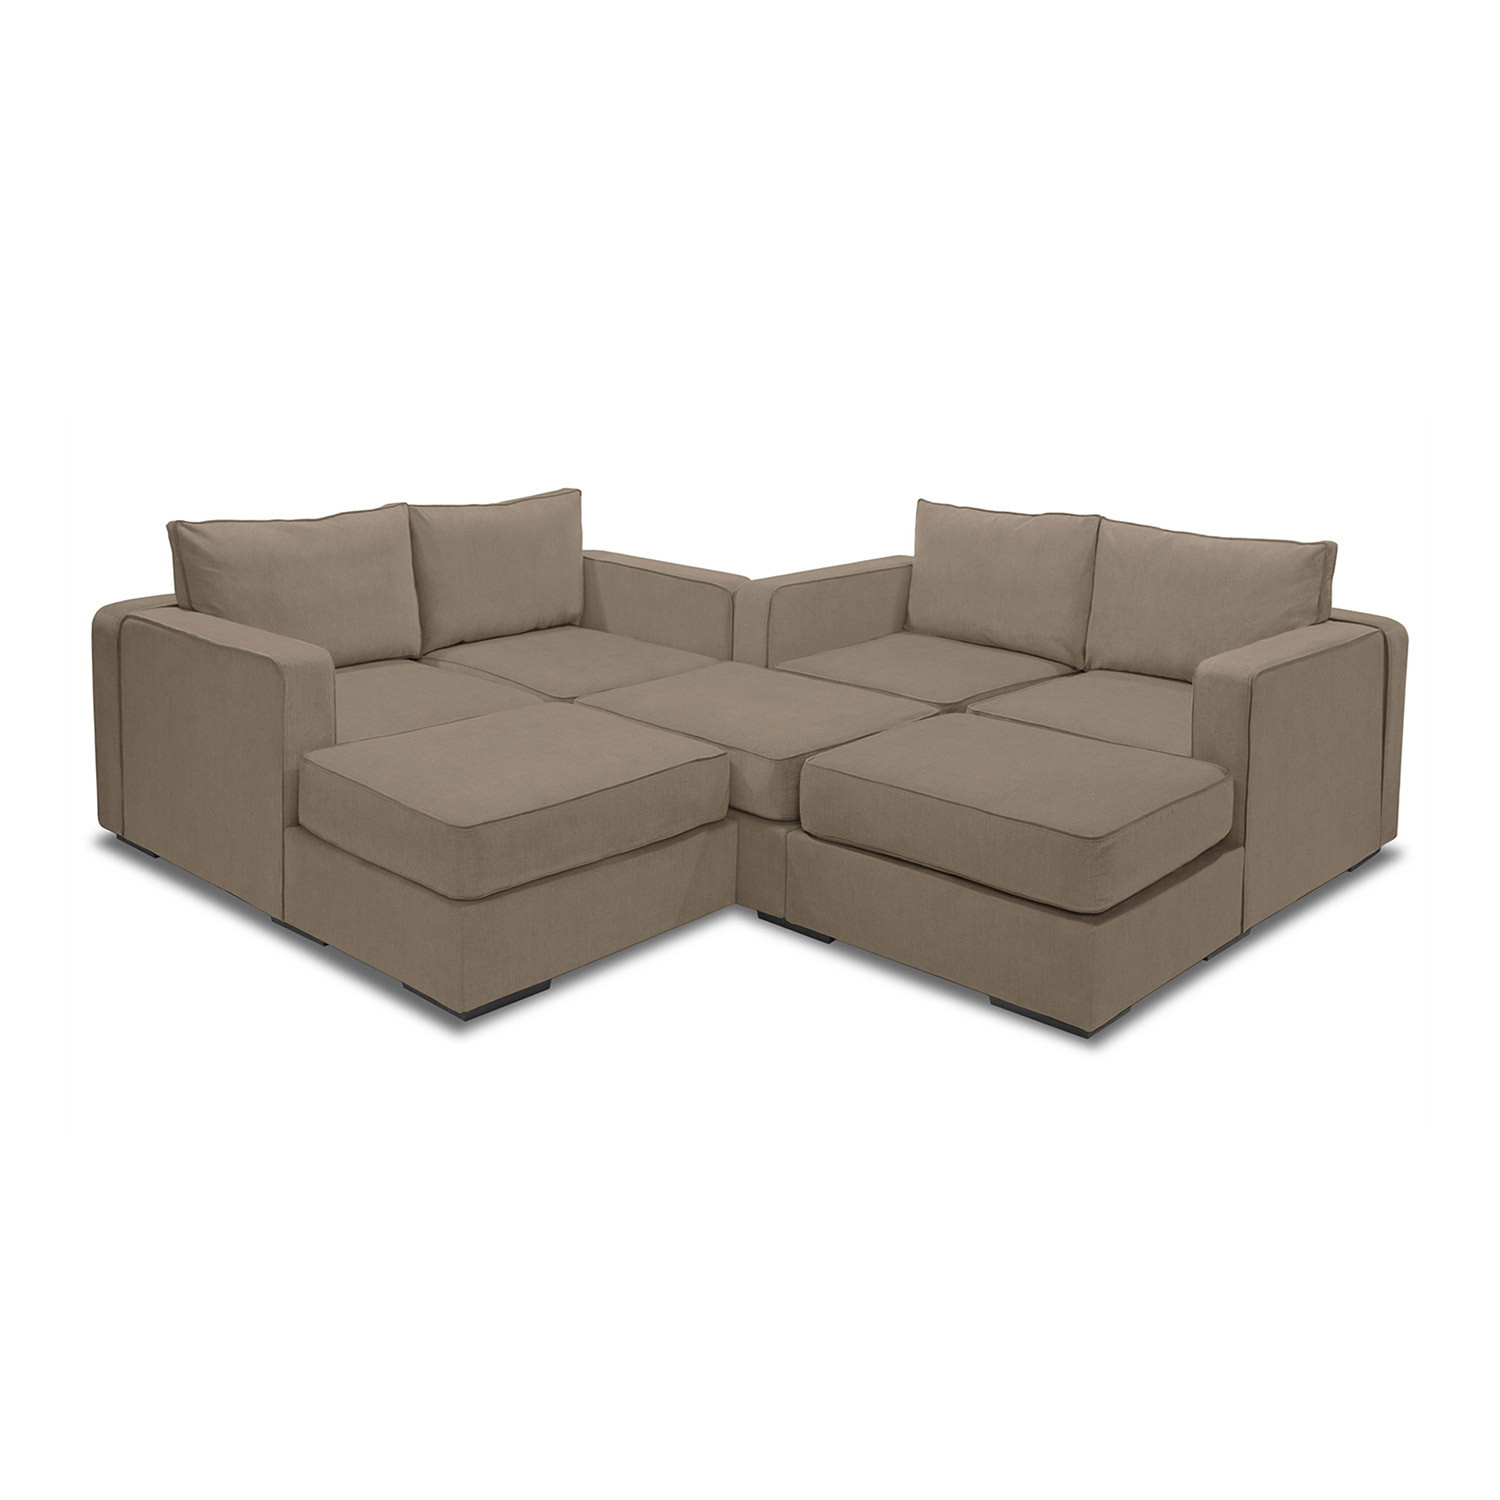 5 Series Sactionals M Lounger Tan LoveSac Touch of Modern